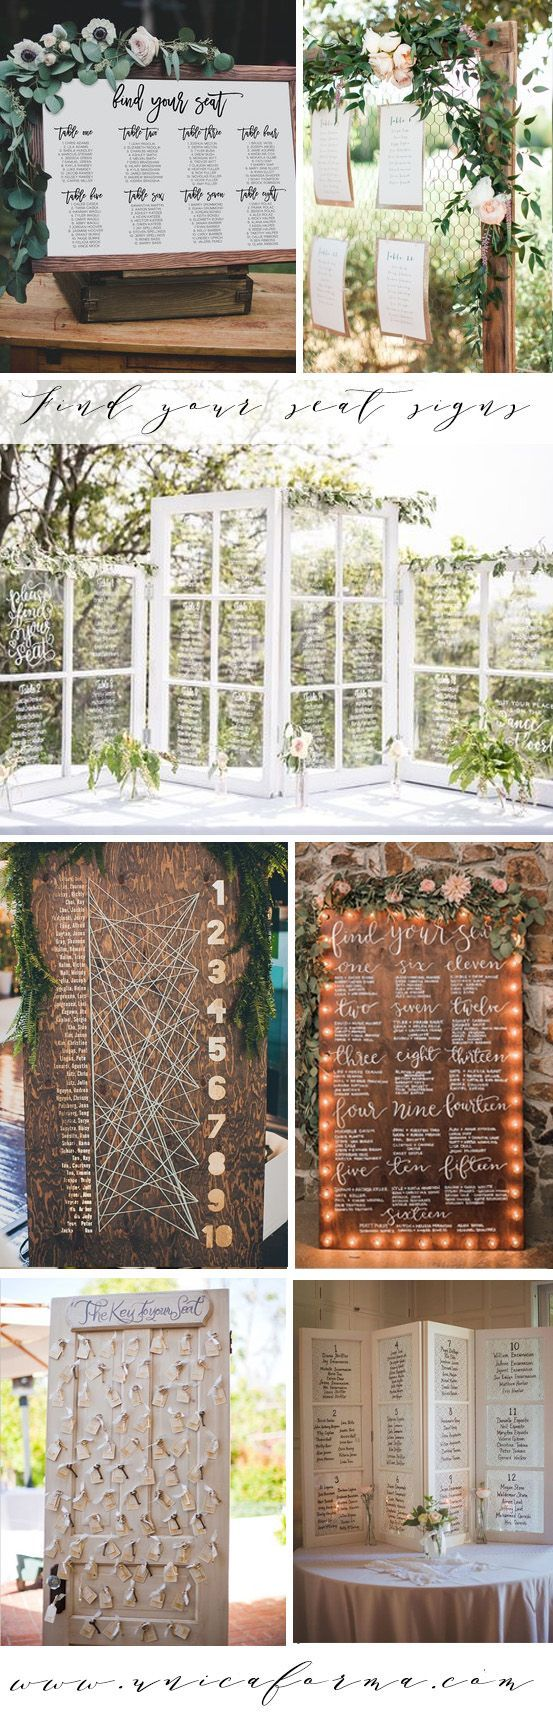 best Wedding Rustic images on Pinterest  Planning a wedding